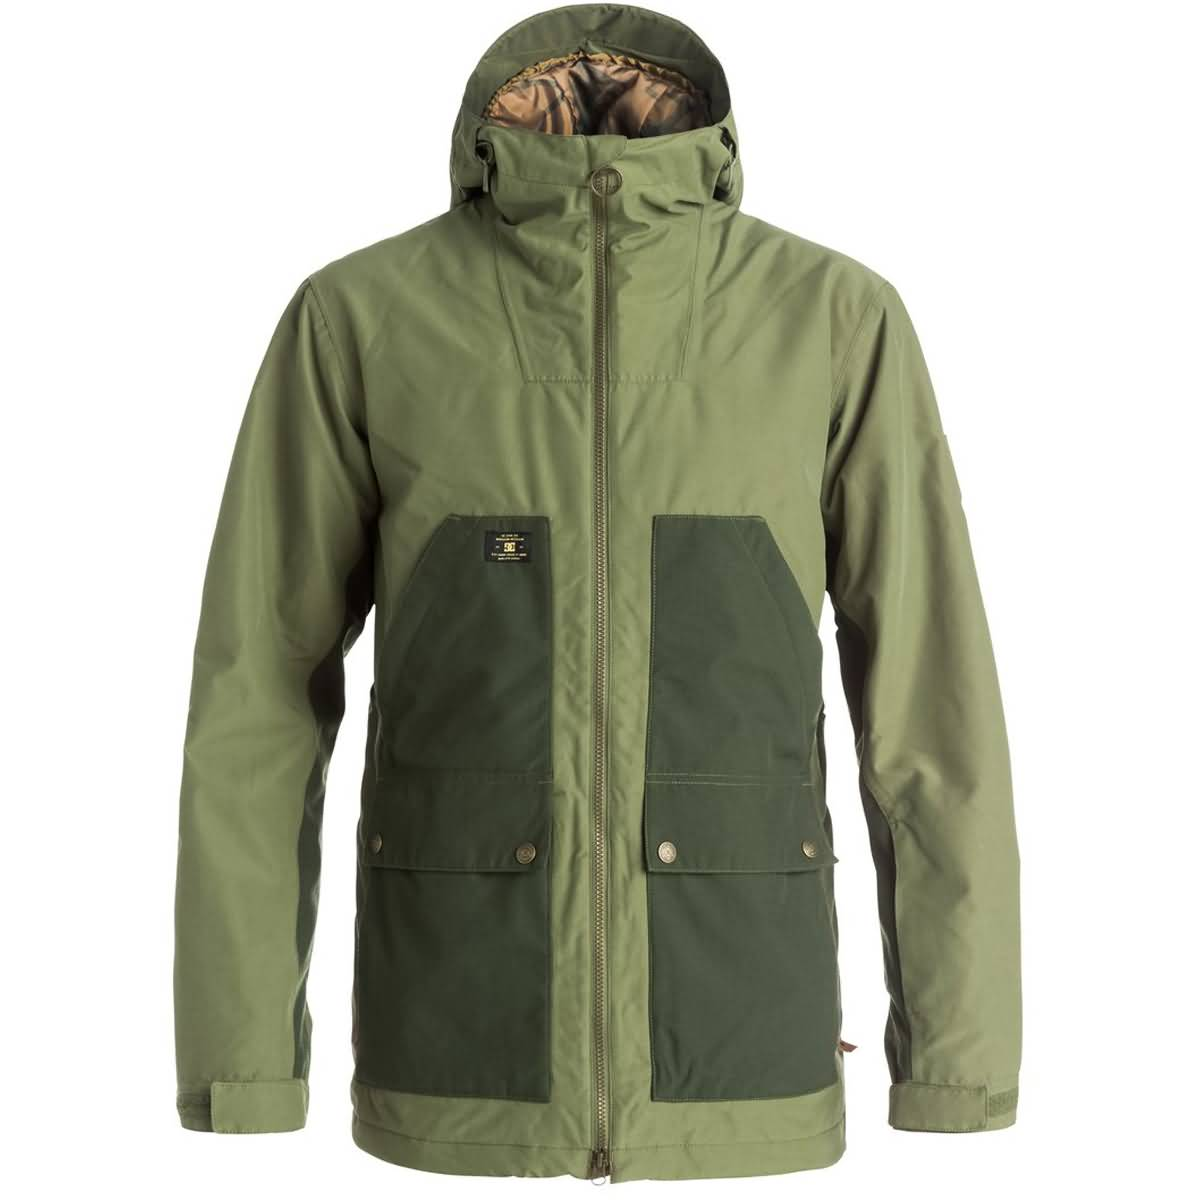 DC Summit Men's Snow Jackets-EDYTJ03026